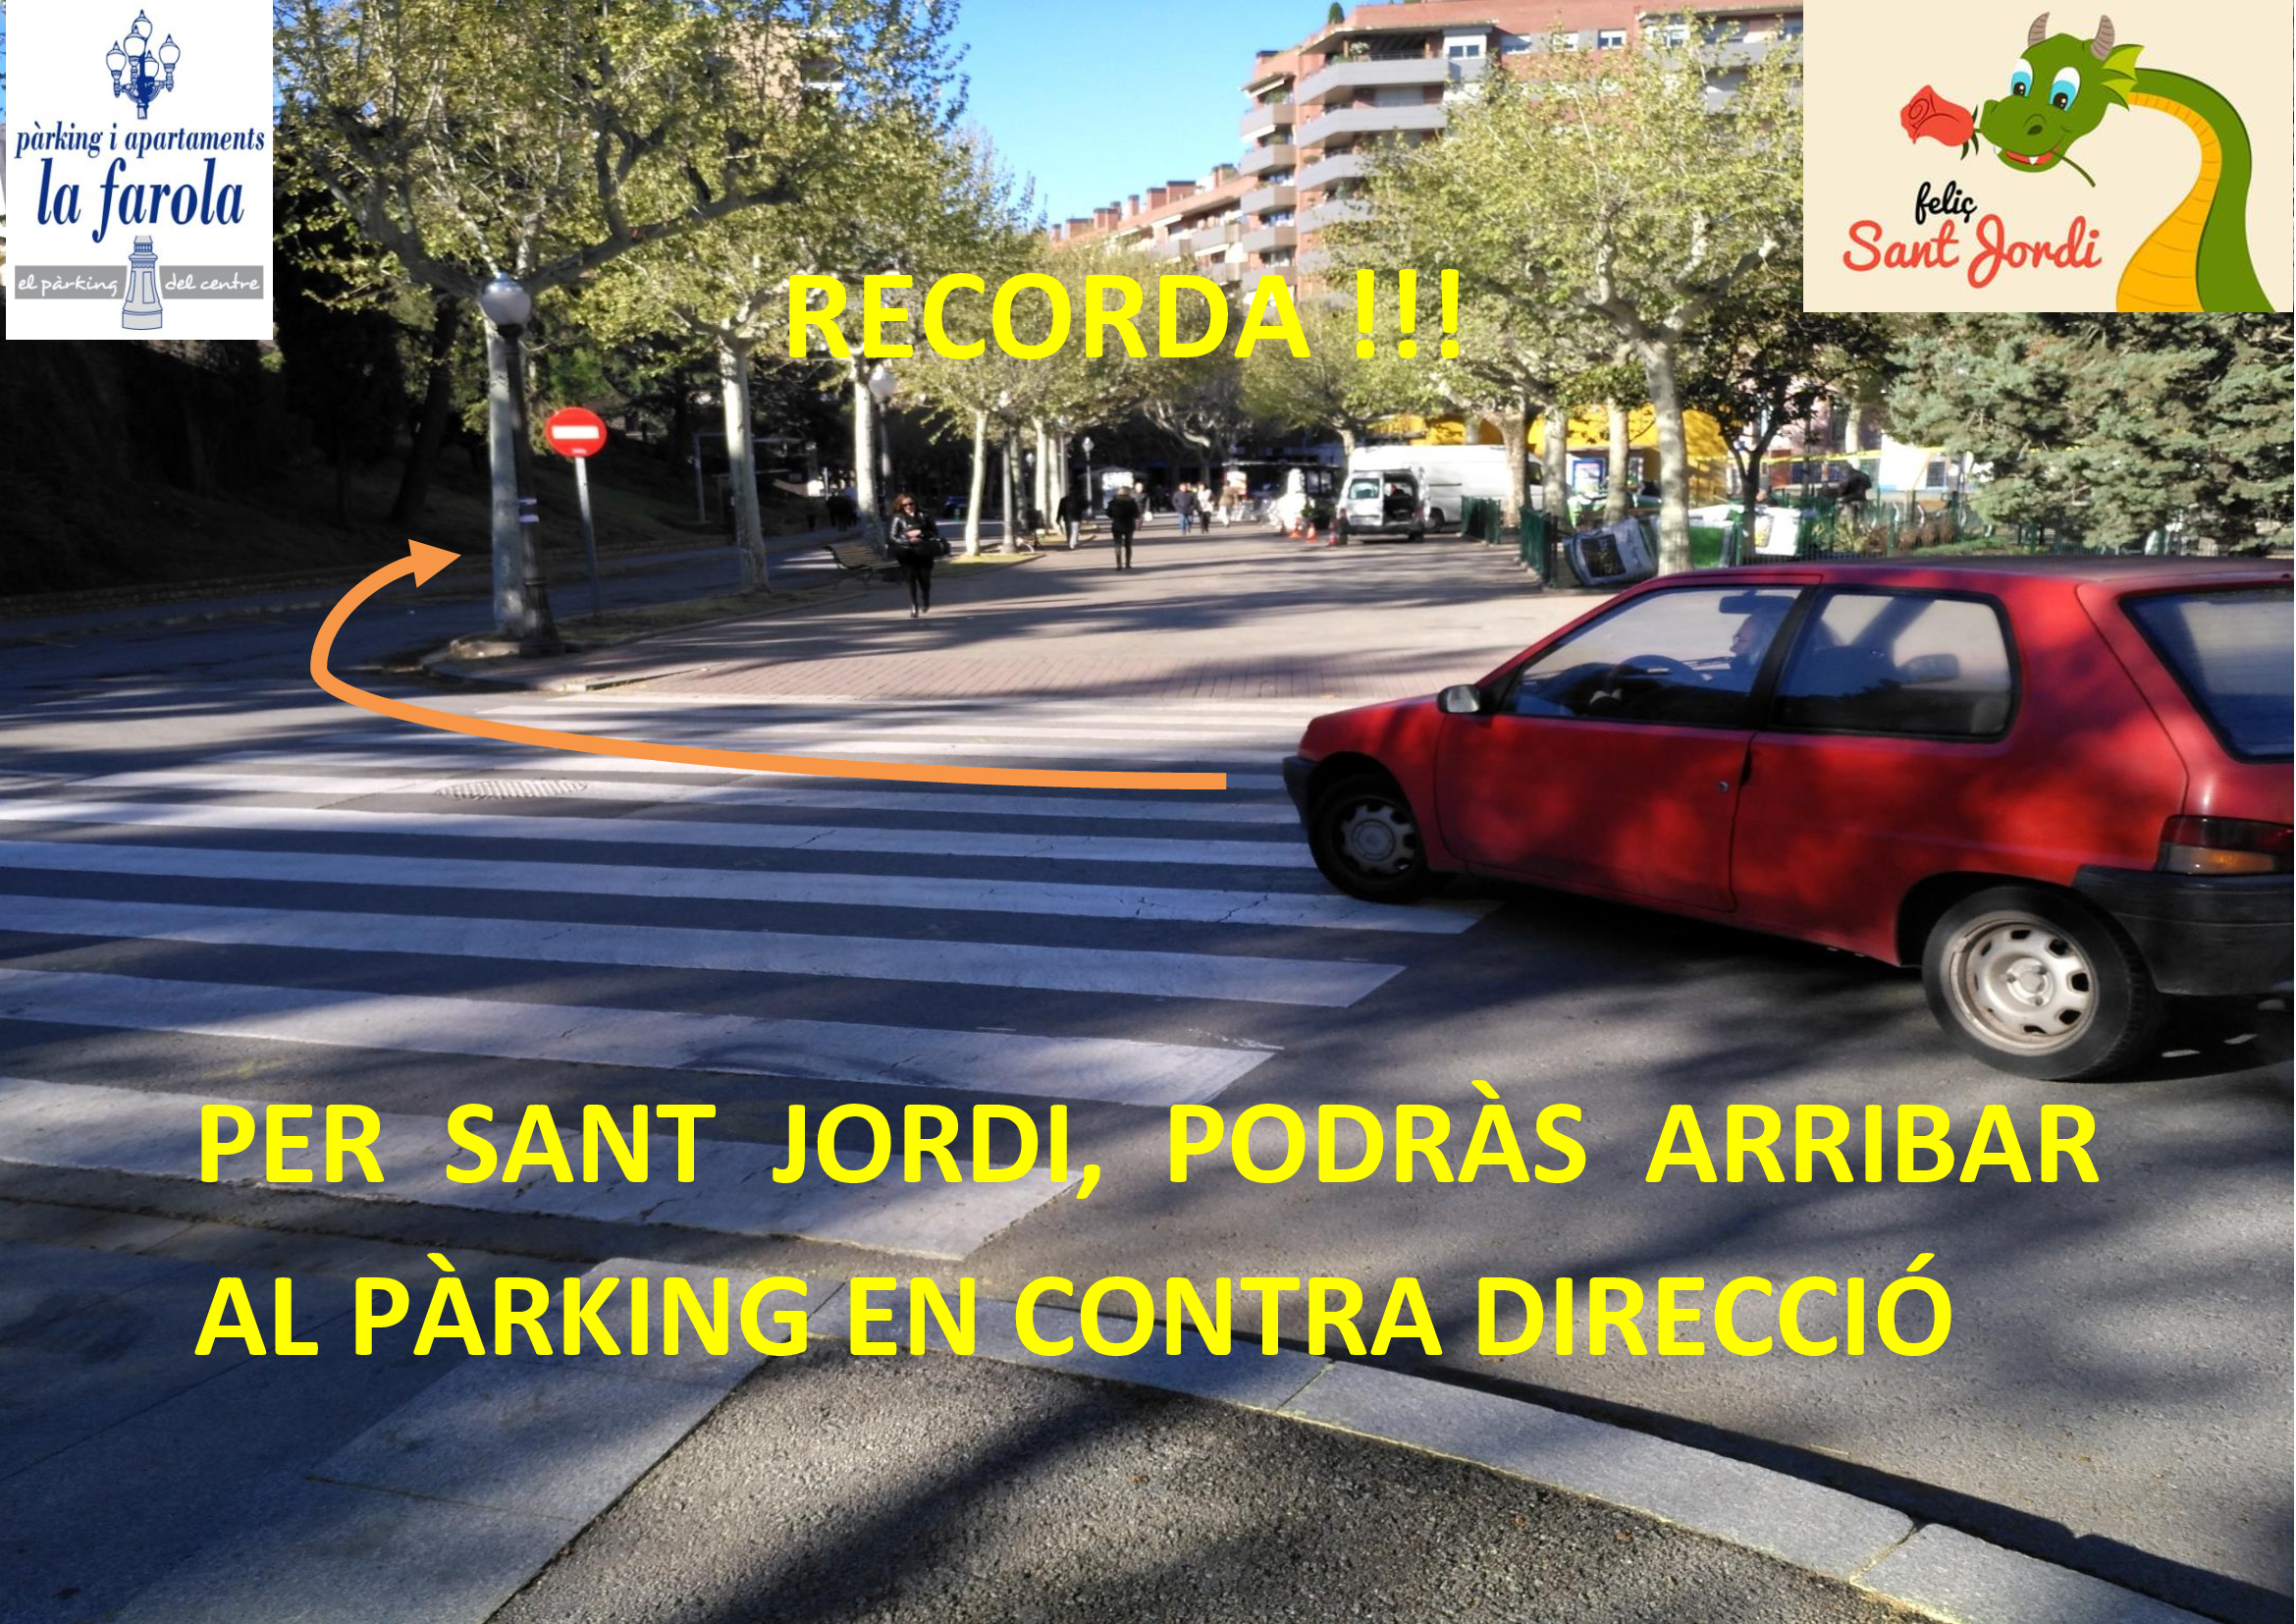 FOR SANT JORDI, CHANGE OF SENTENCE TO ARRIVE TO PARKING